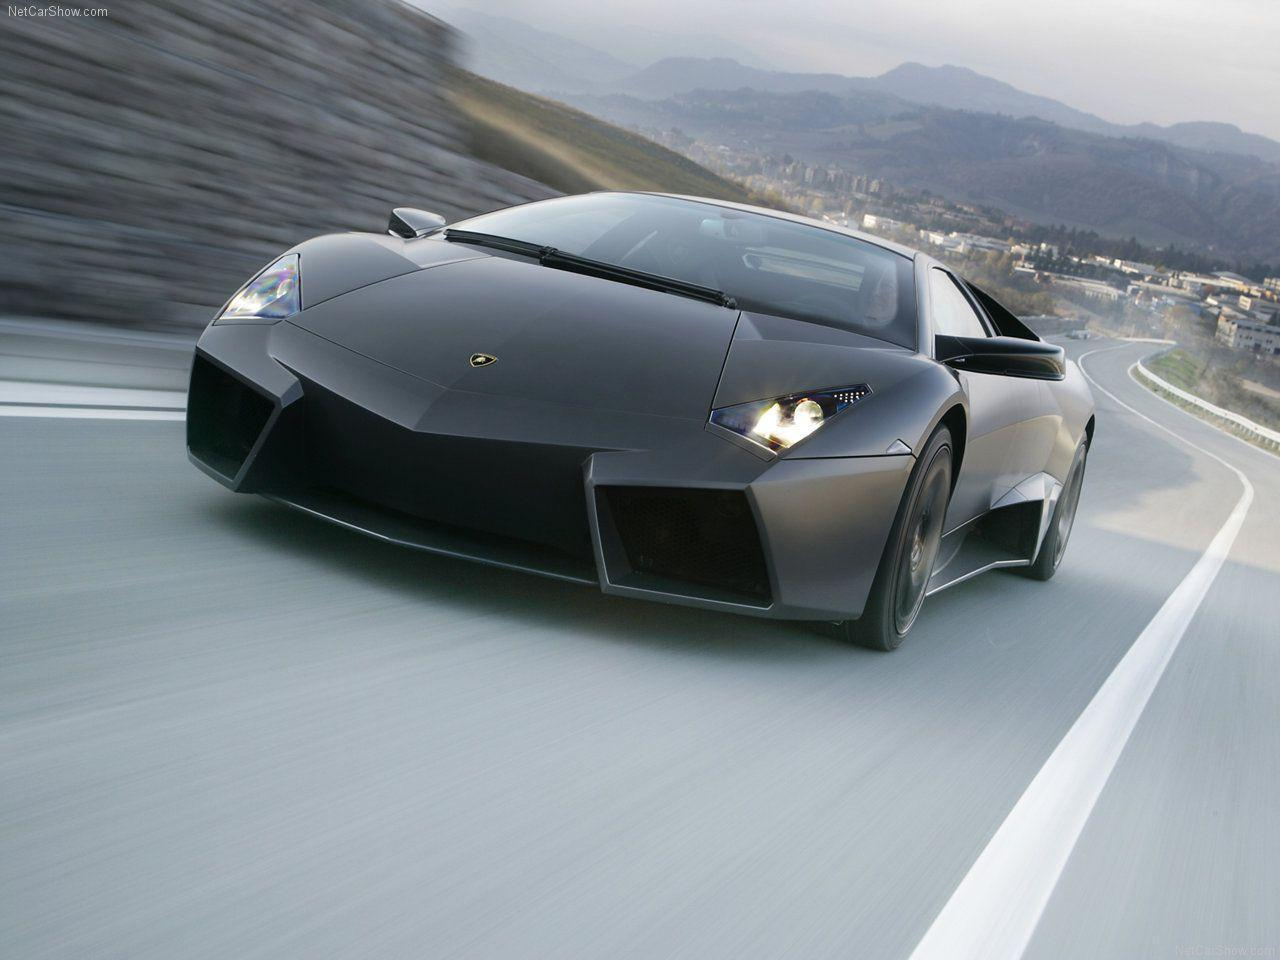 Lamborghini Cars Wallpapers HD | Lamborghini FB Covers | High .